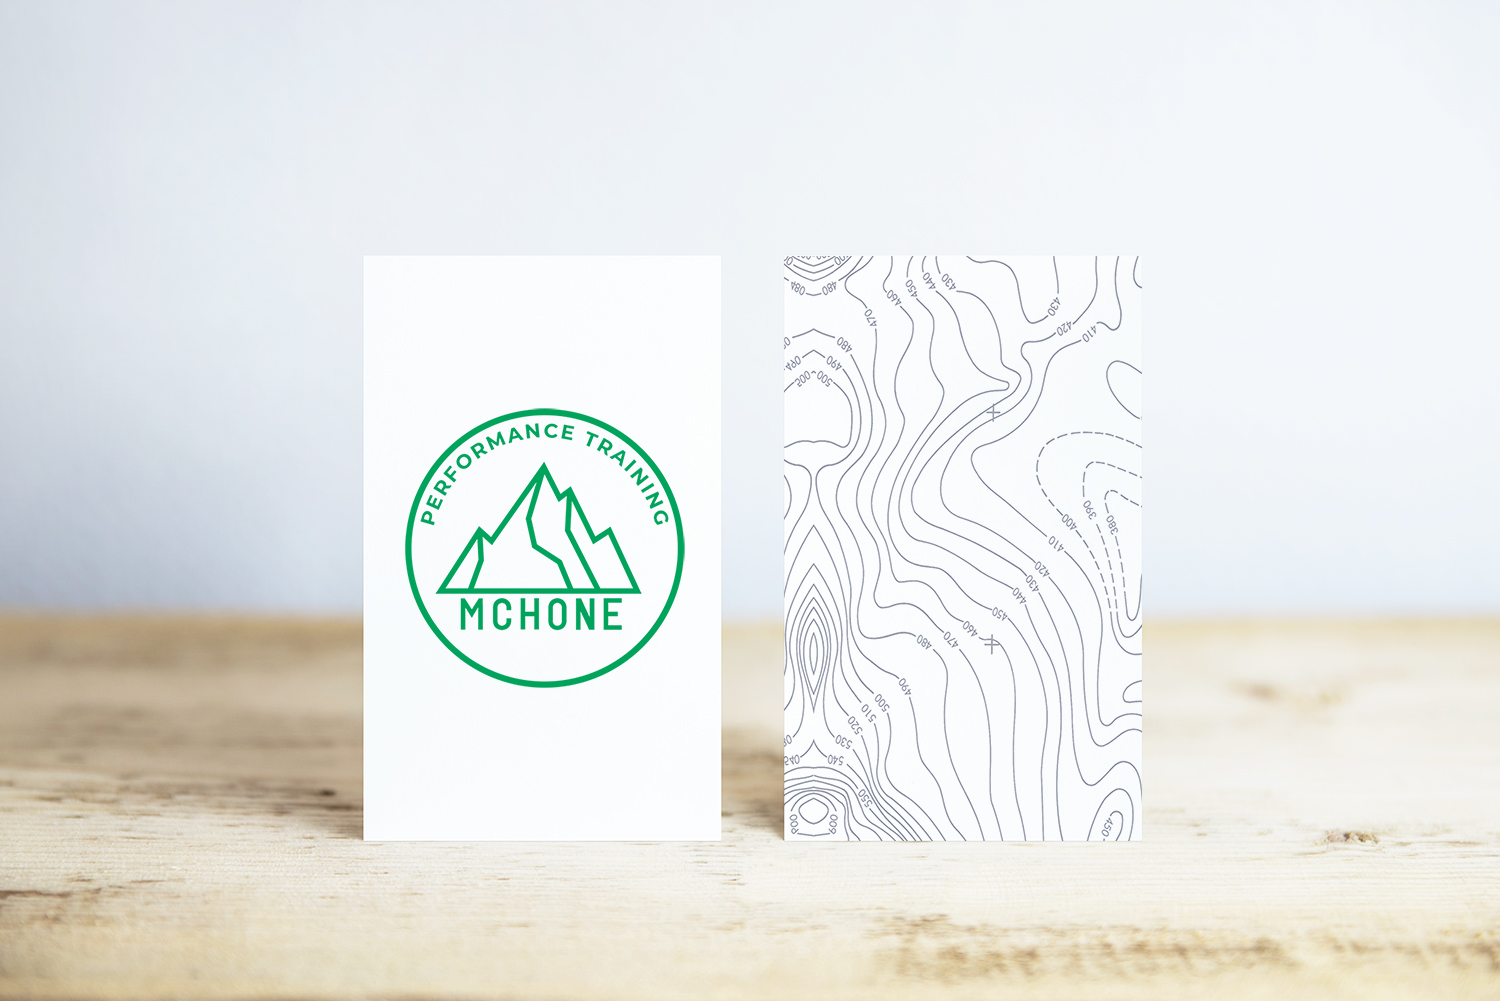 mchone business cards.jpg